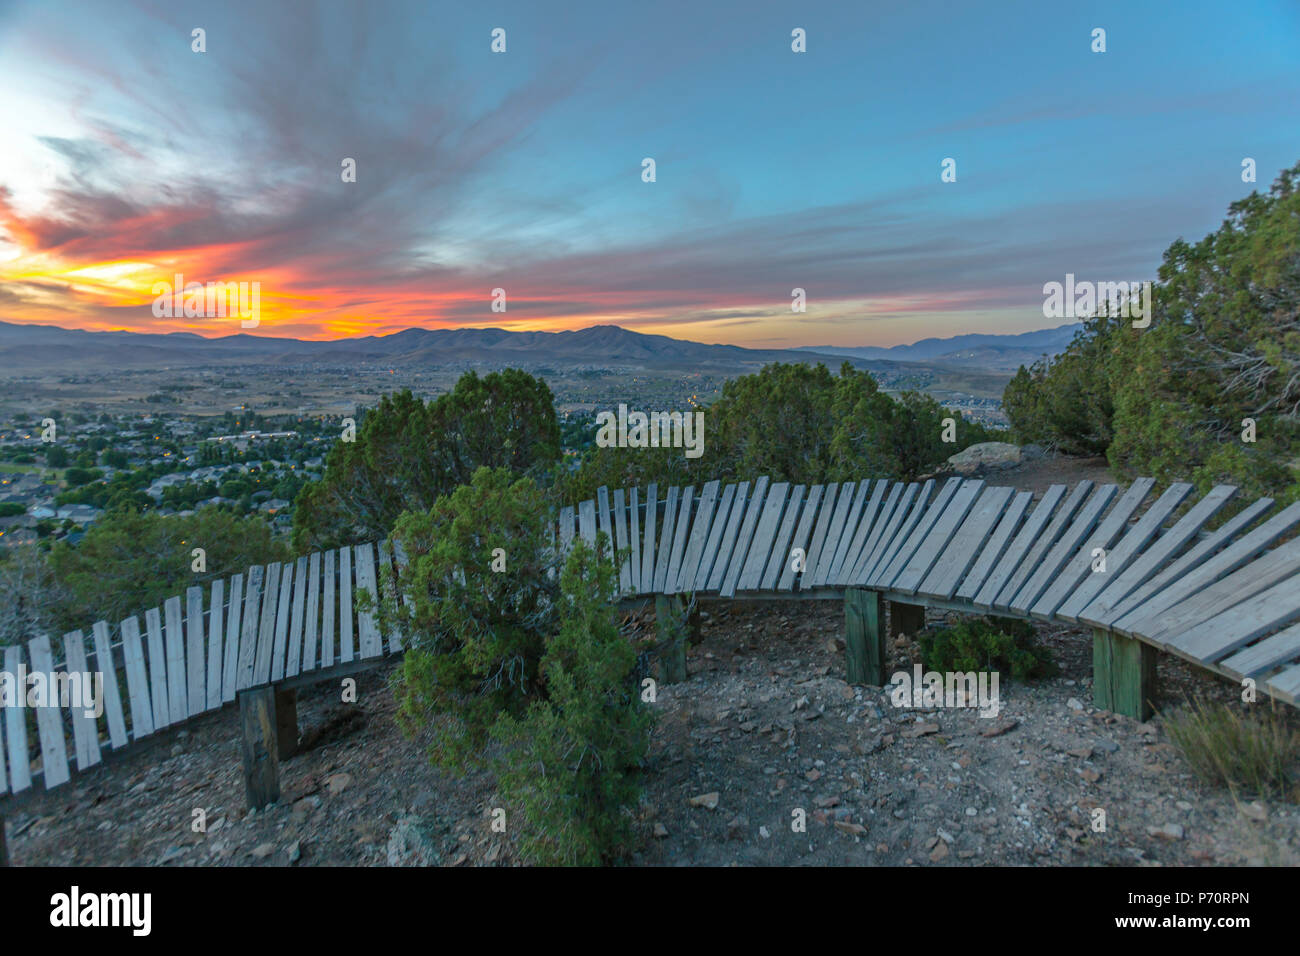 Wooden berm at sunset in the hills - Stock Image